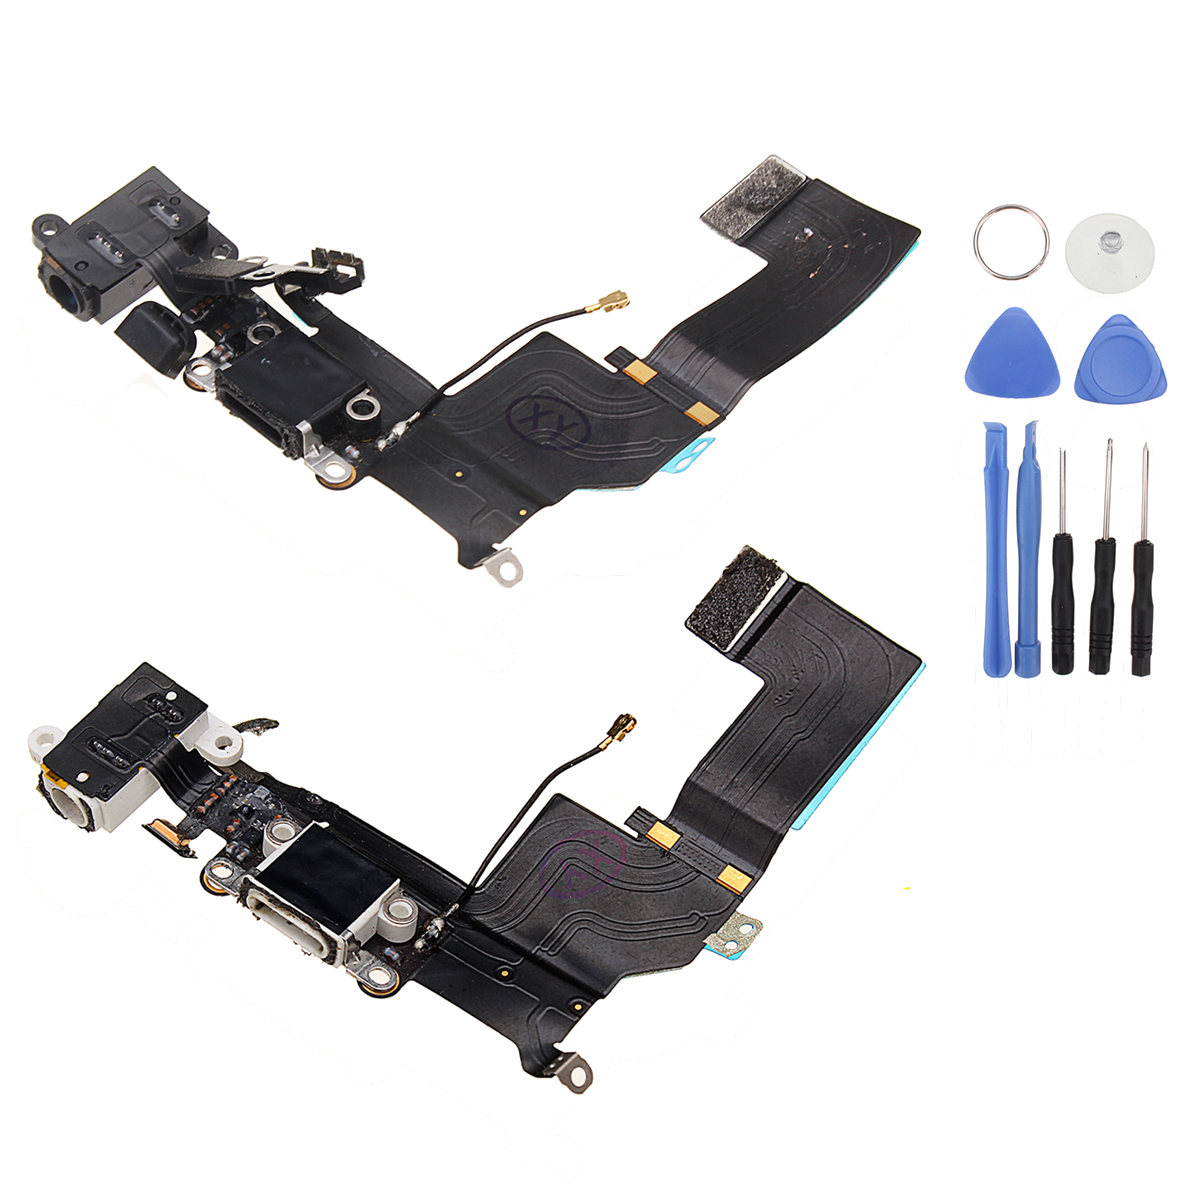 Outside Telephone Cable Repair Kit : Other parts charging port dock connector flex cable